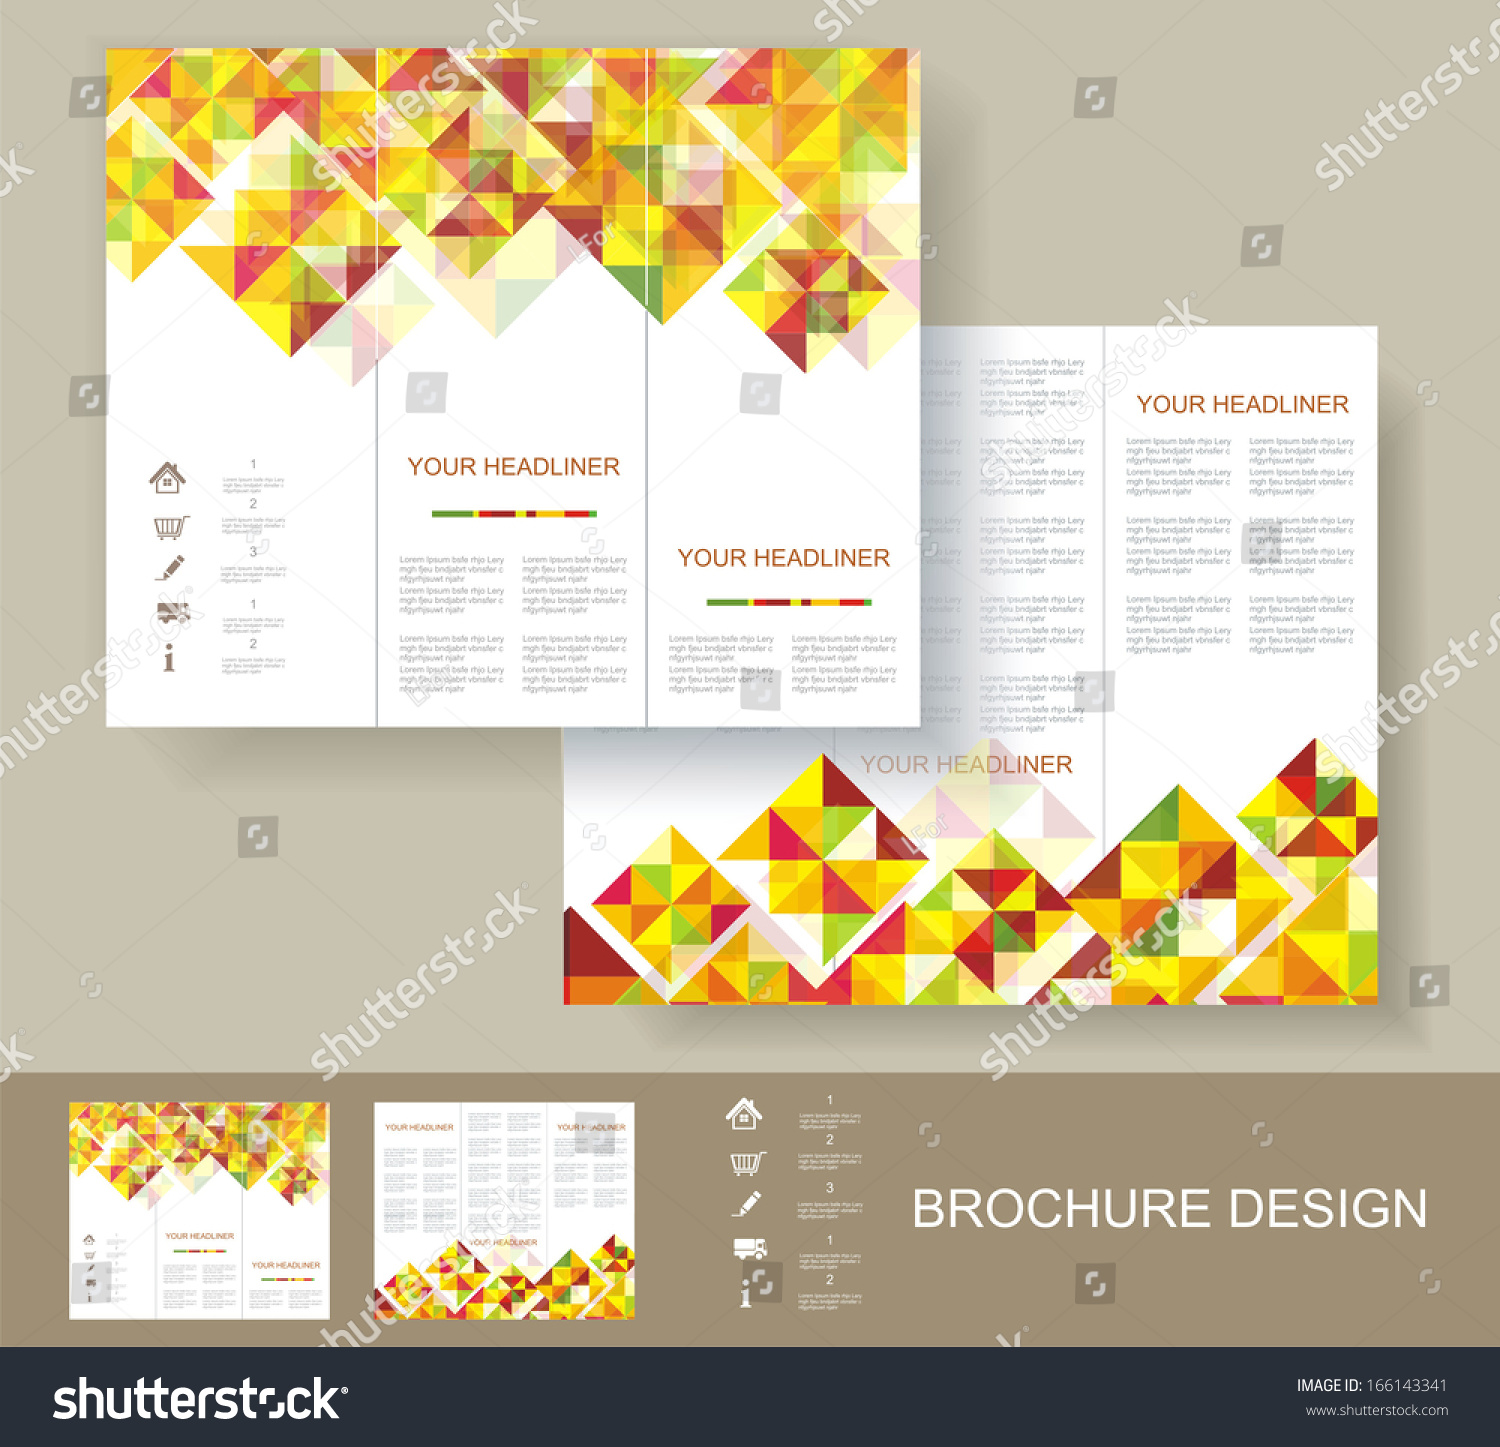 print poster design template book cover background design save to a lightbox